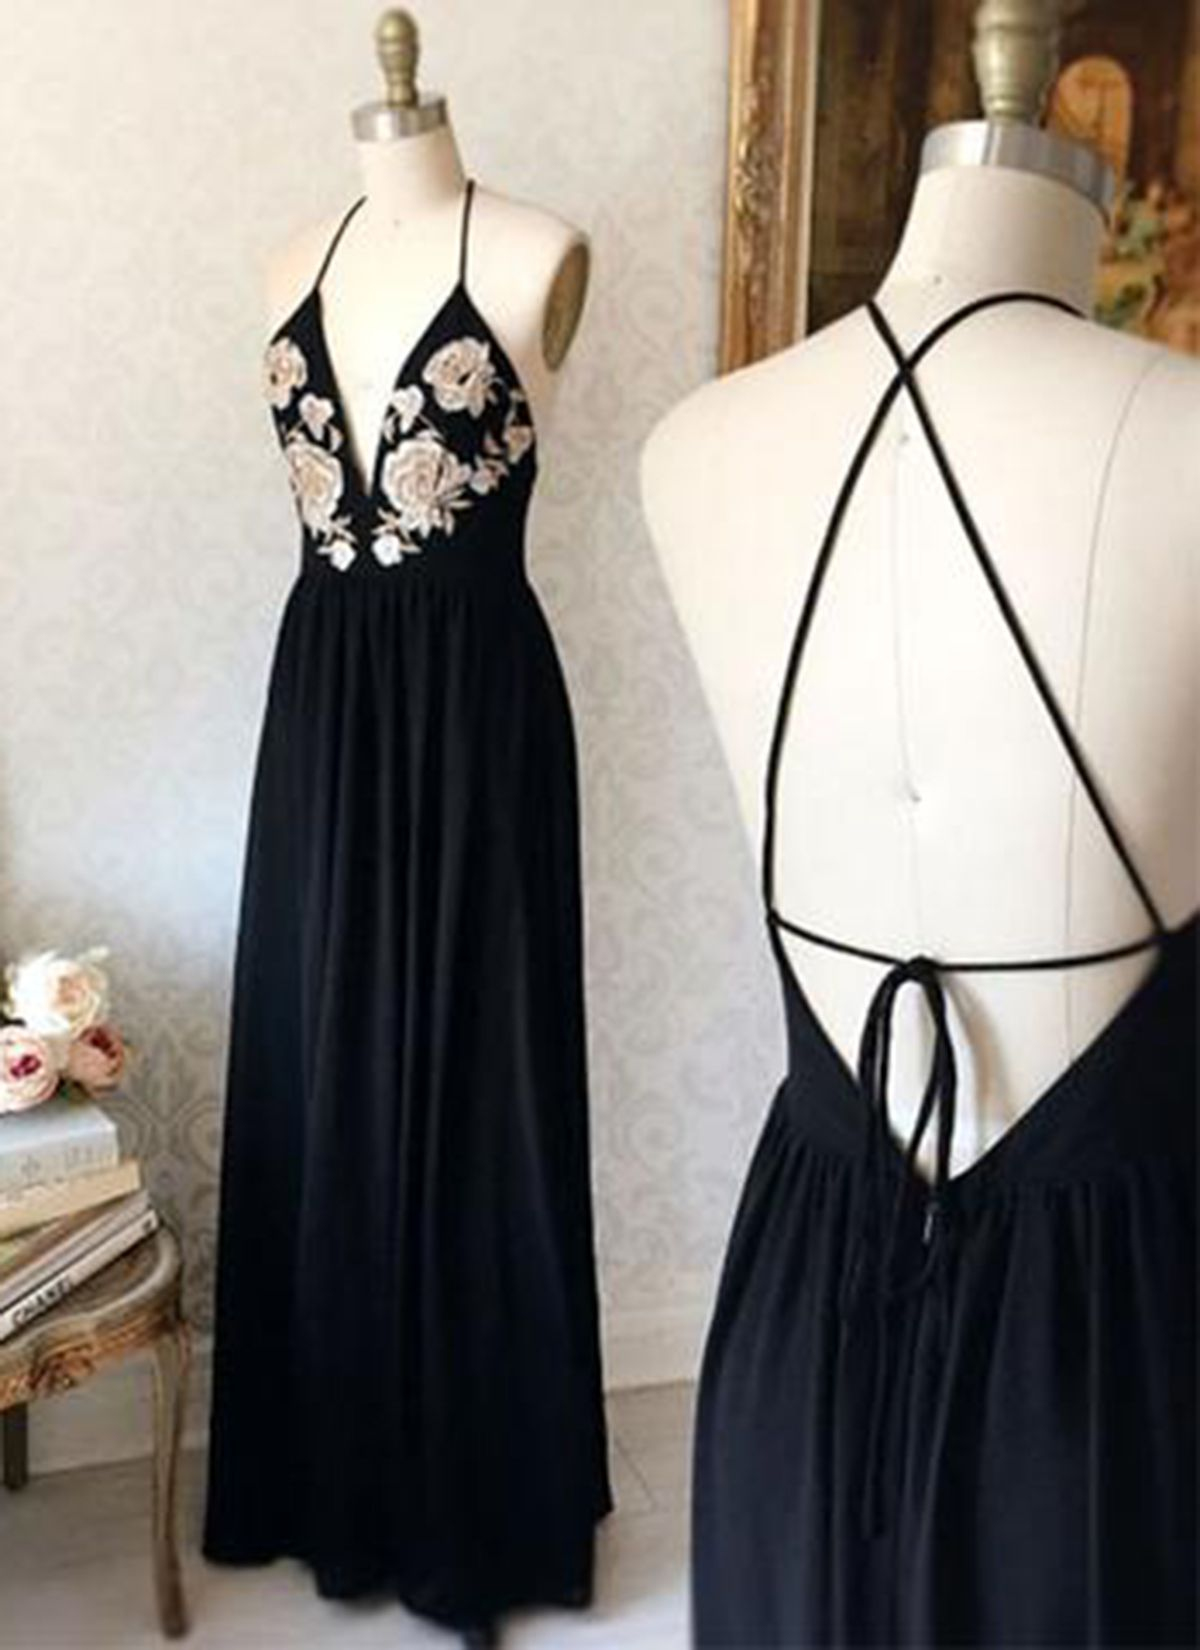 6a4c6cd0f293 New arrival black chiffon backless spaghetti straps V neck long evening  dress